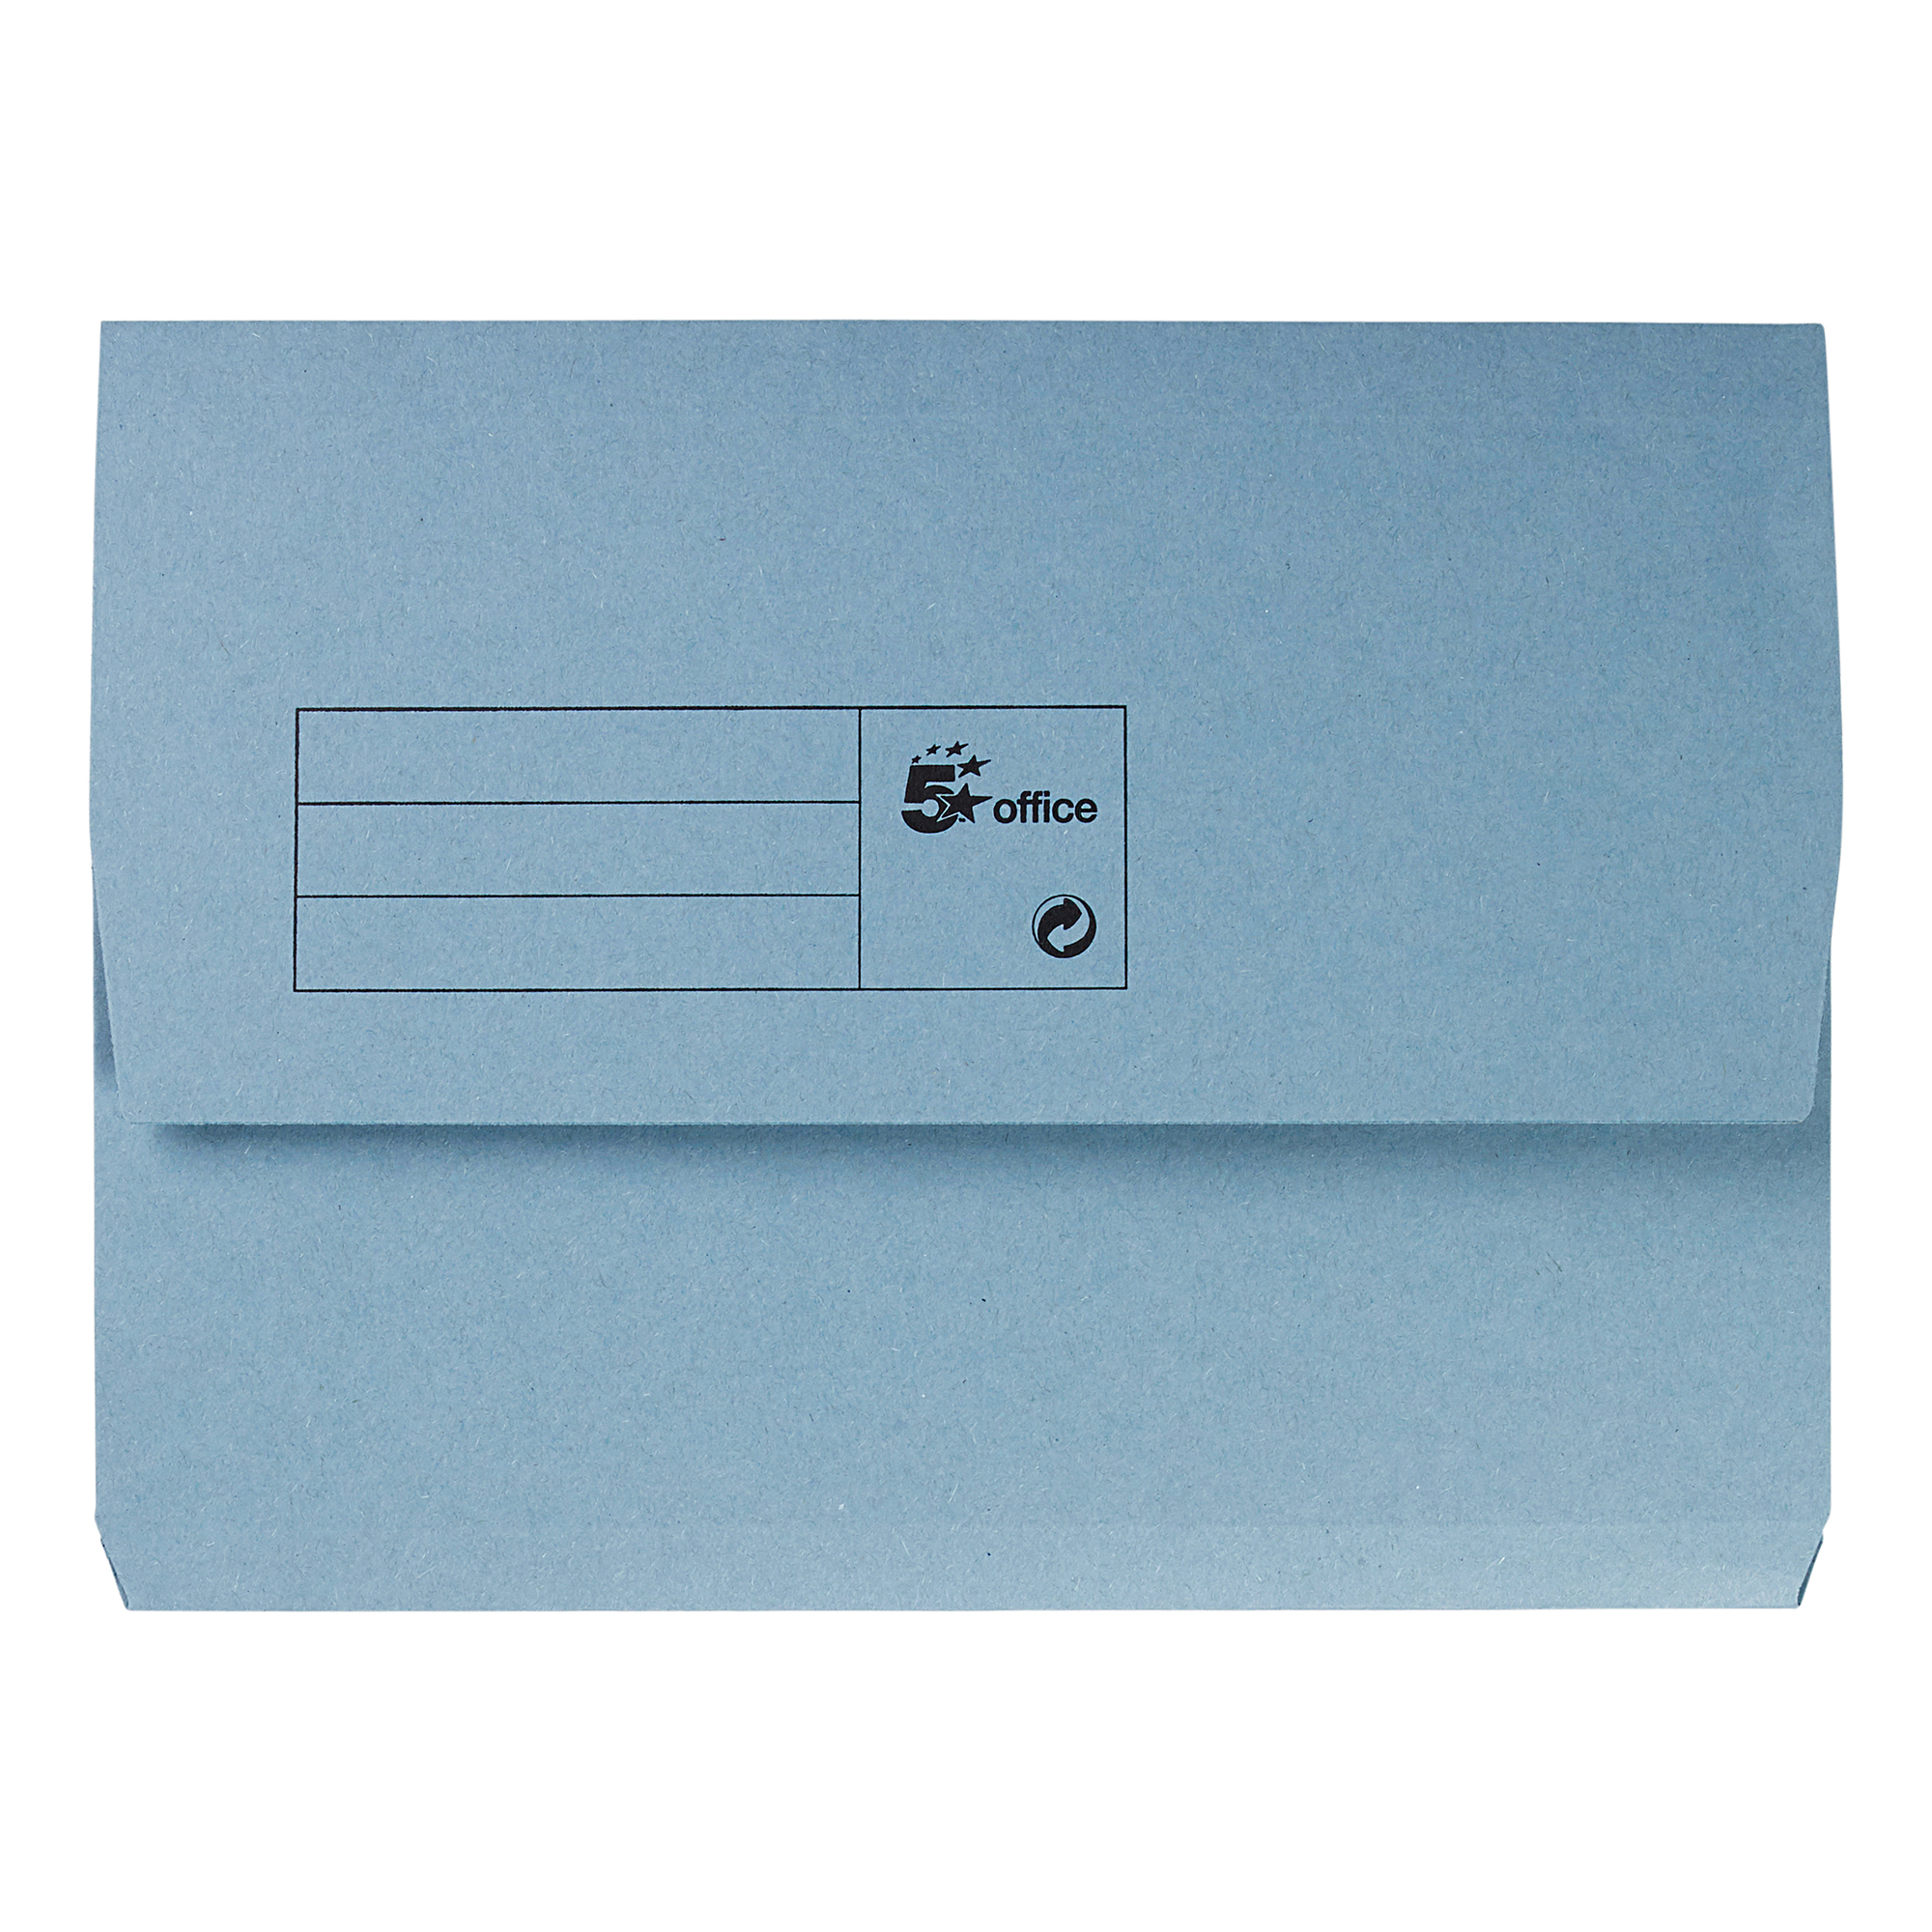 5 Star Office Document Wallet Half Flap 285gsm Recycled Capacity 32mm A4 Blue Pack 50